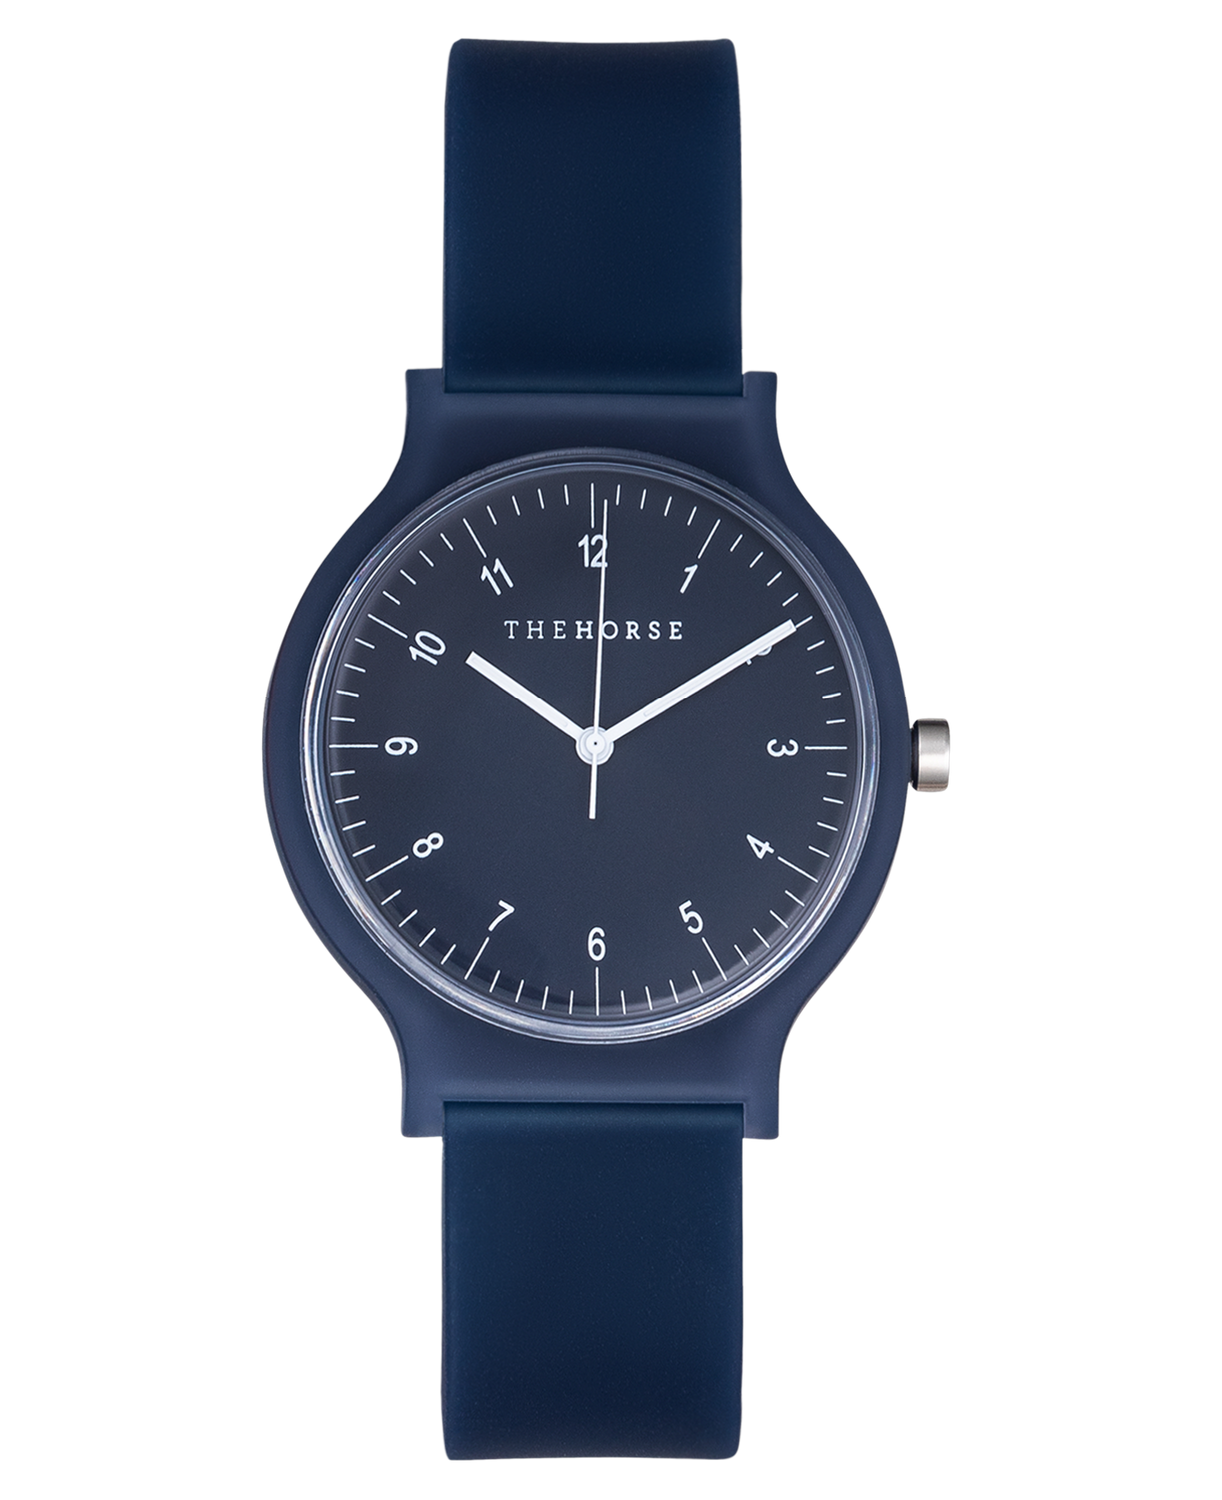 SA5 The Horse Blockout Unisex Watch in Navy. Compendium Design Store, Fremantle. AfterPay, ZipPay accepted.